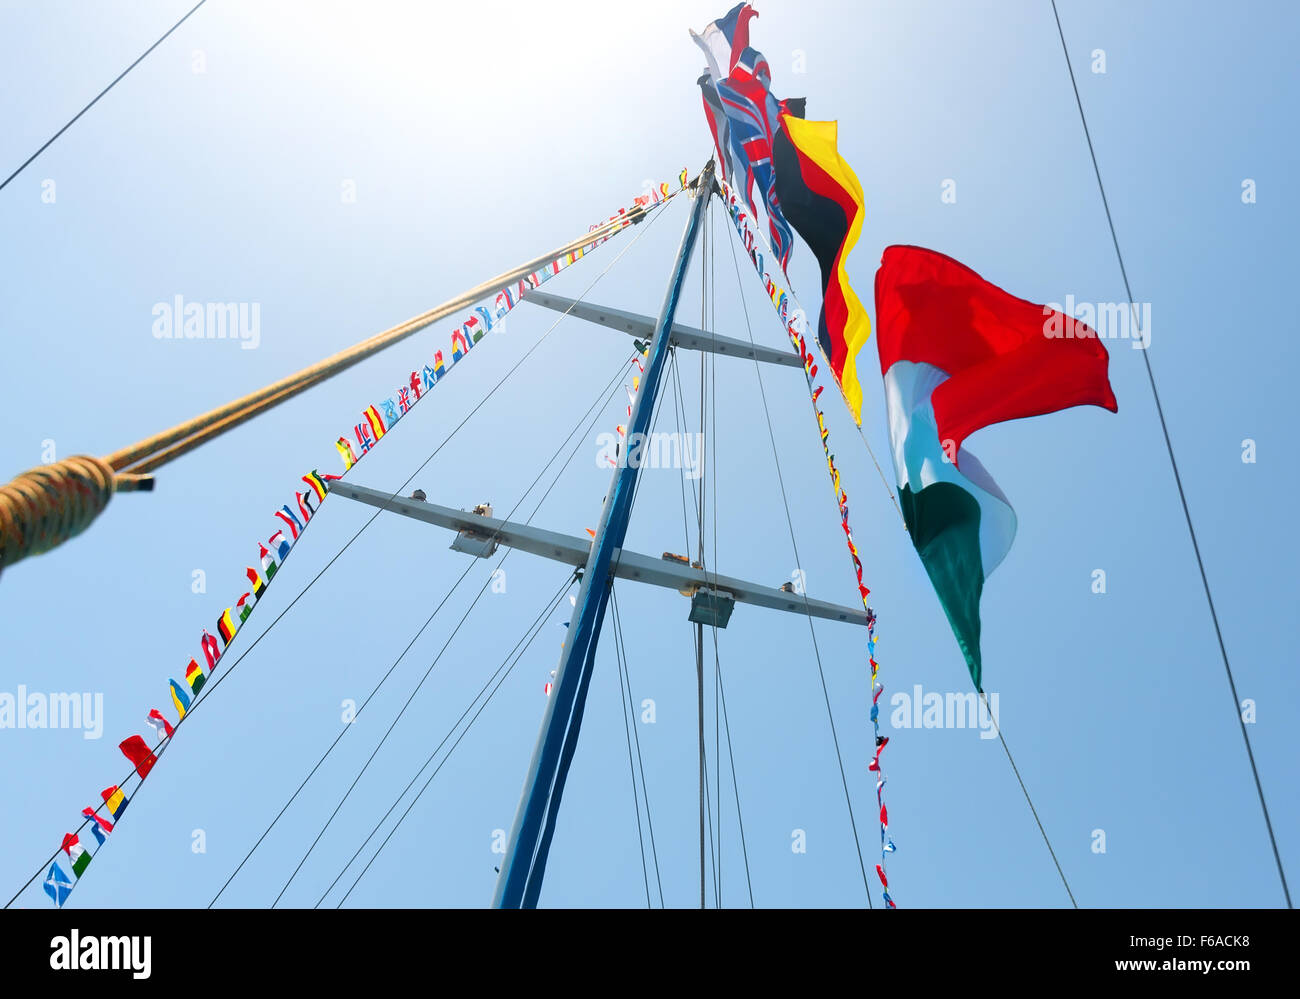 Flags of different countries on the mast of sailboat - Stock Image